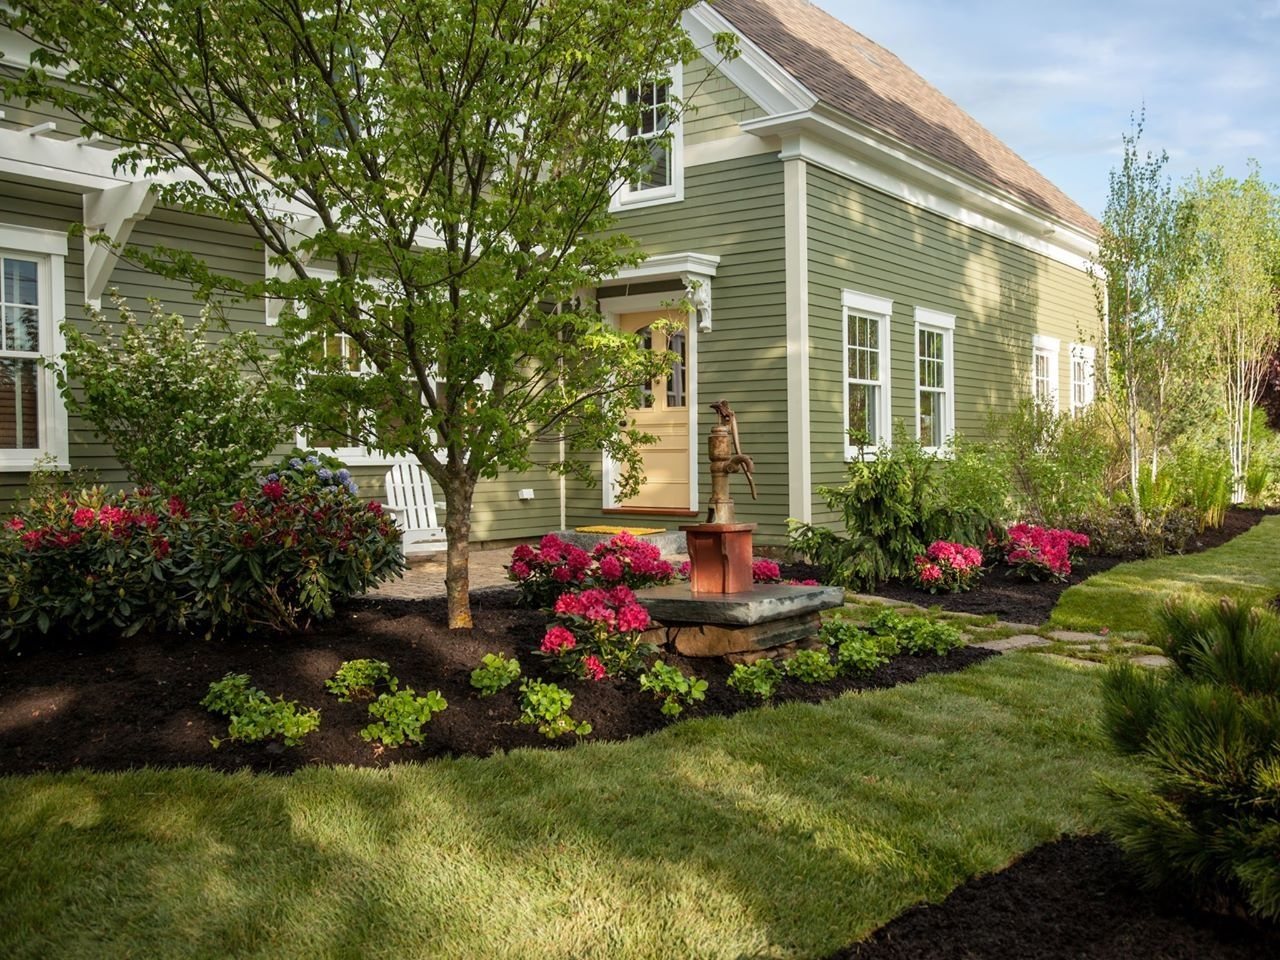 Great for shady areas | Home landscaping, Front ... on Shady Yard Ideas id=32173